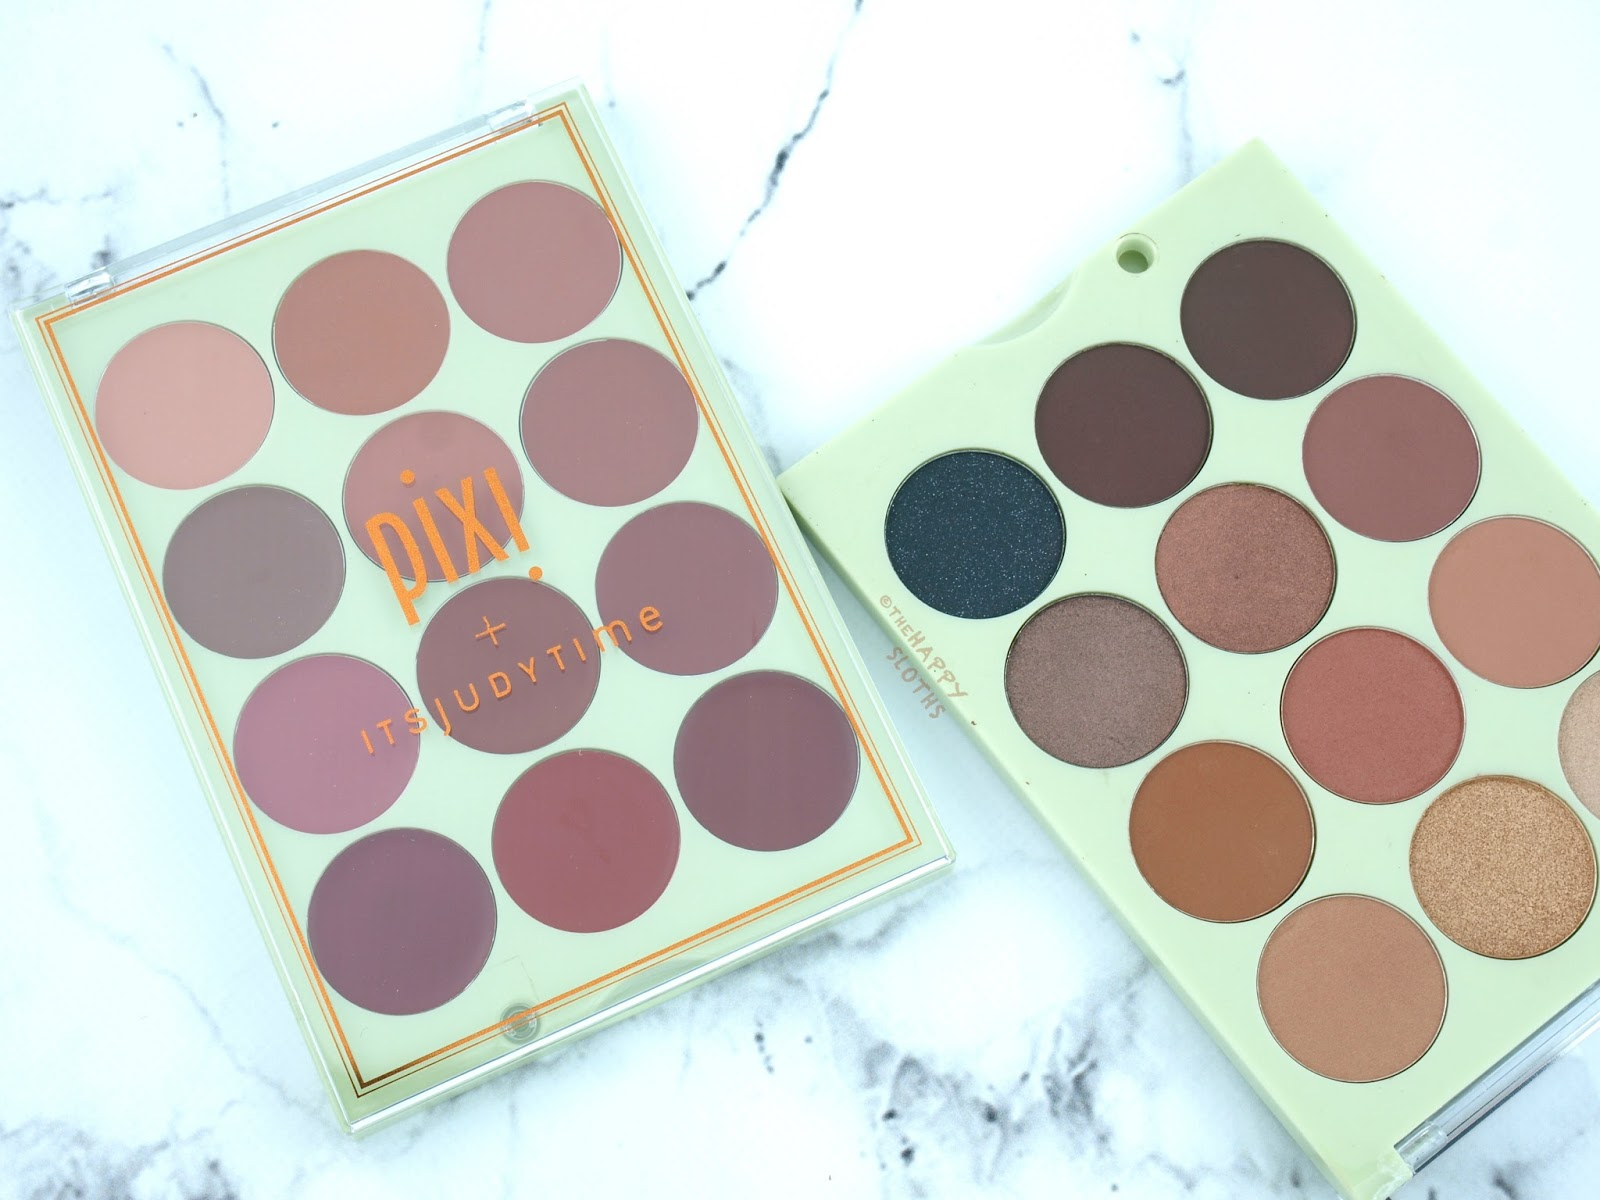 Pixi + itsjudytime Collaboration | ItsEyeTime & ItsLipTime Get The Look Palettes: Review and Swatches